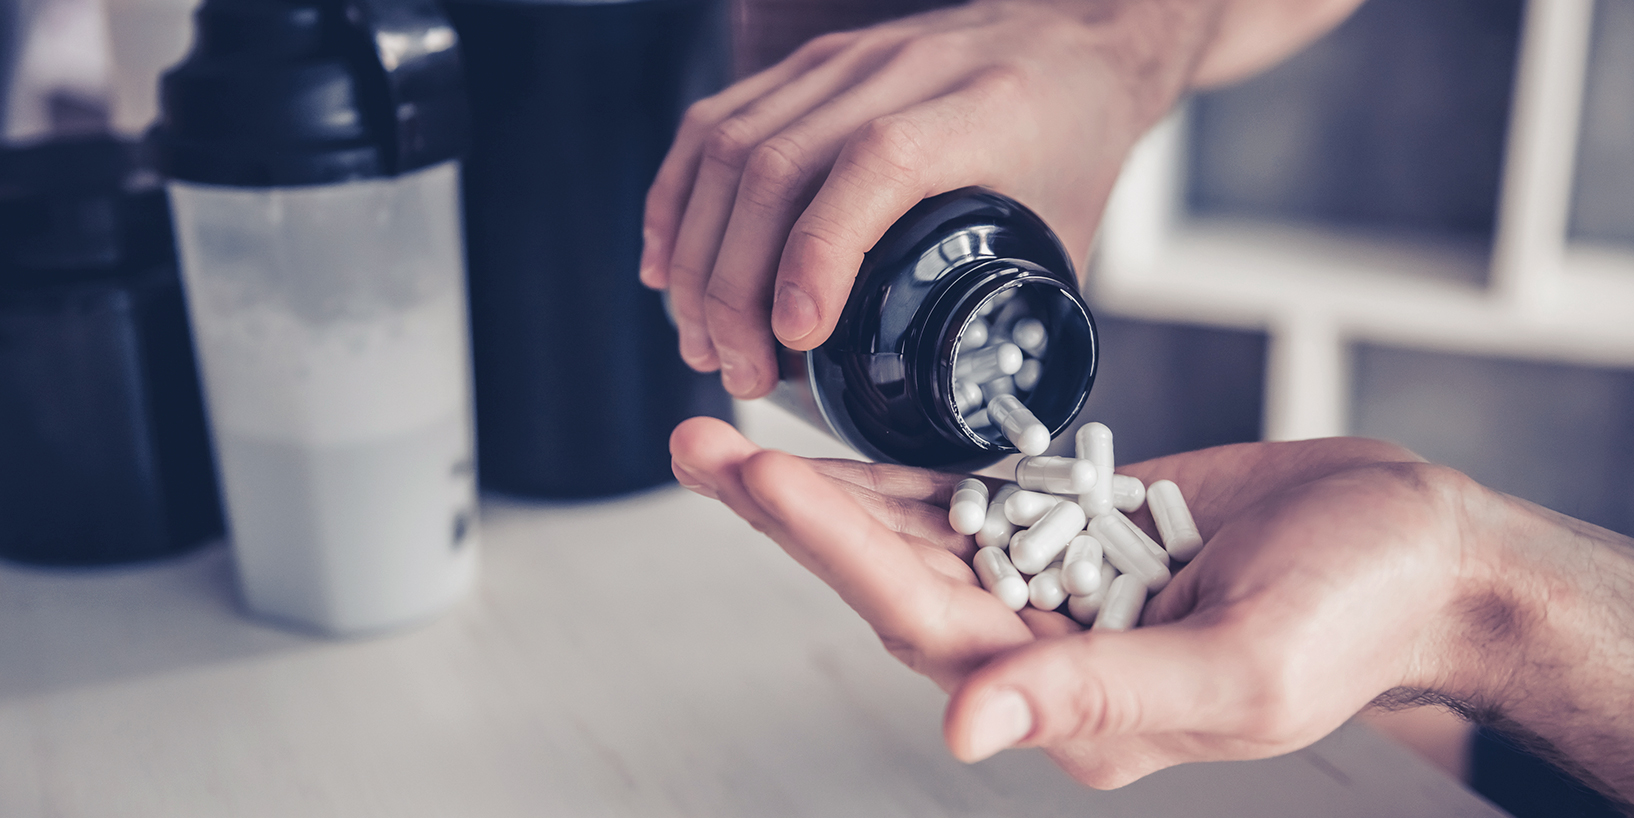 Supplements dumping in hand